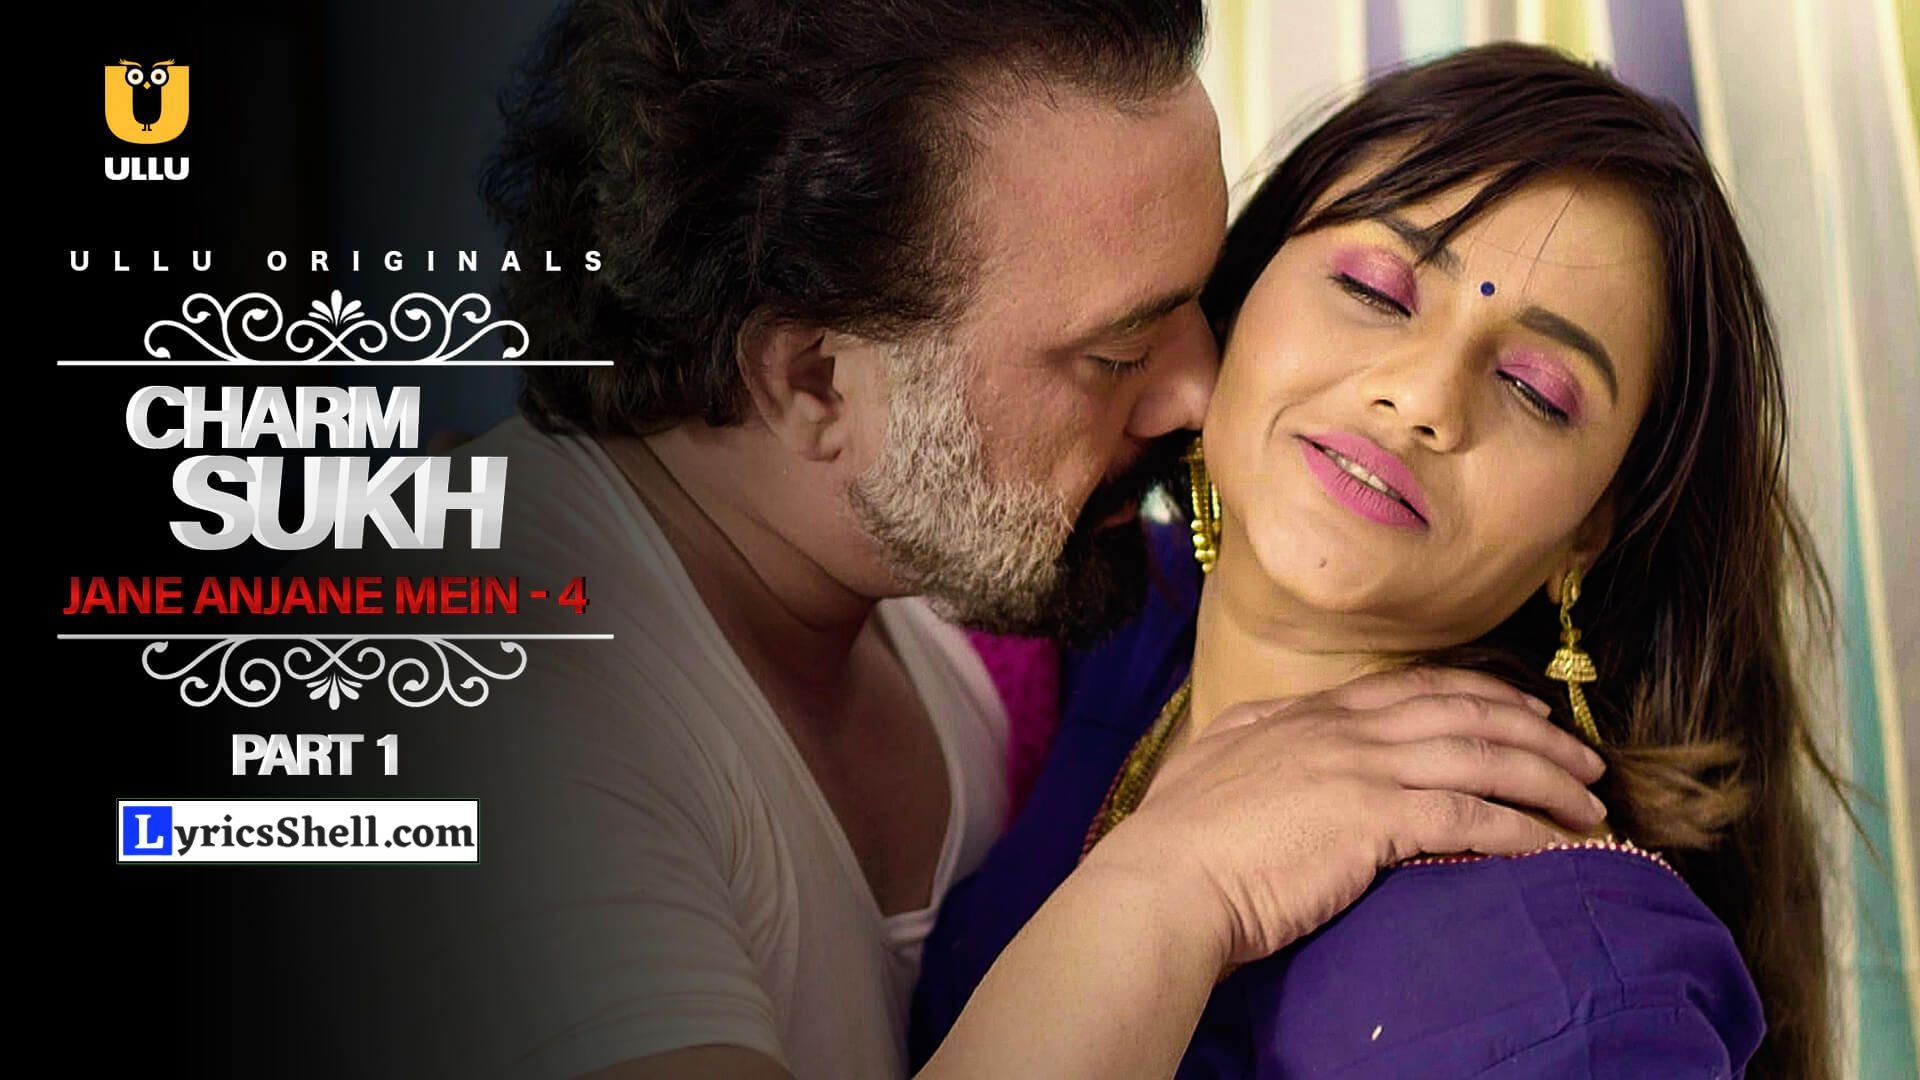 Charmsukh Jane Anjane Mein 4 Part 1 Ullu Web Series Watch Full Episode Online (Cast, All Episodes Online, Download, Story, Reviews, and Watch Online)